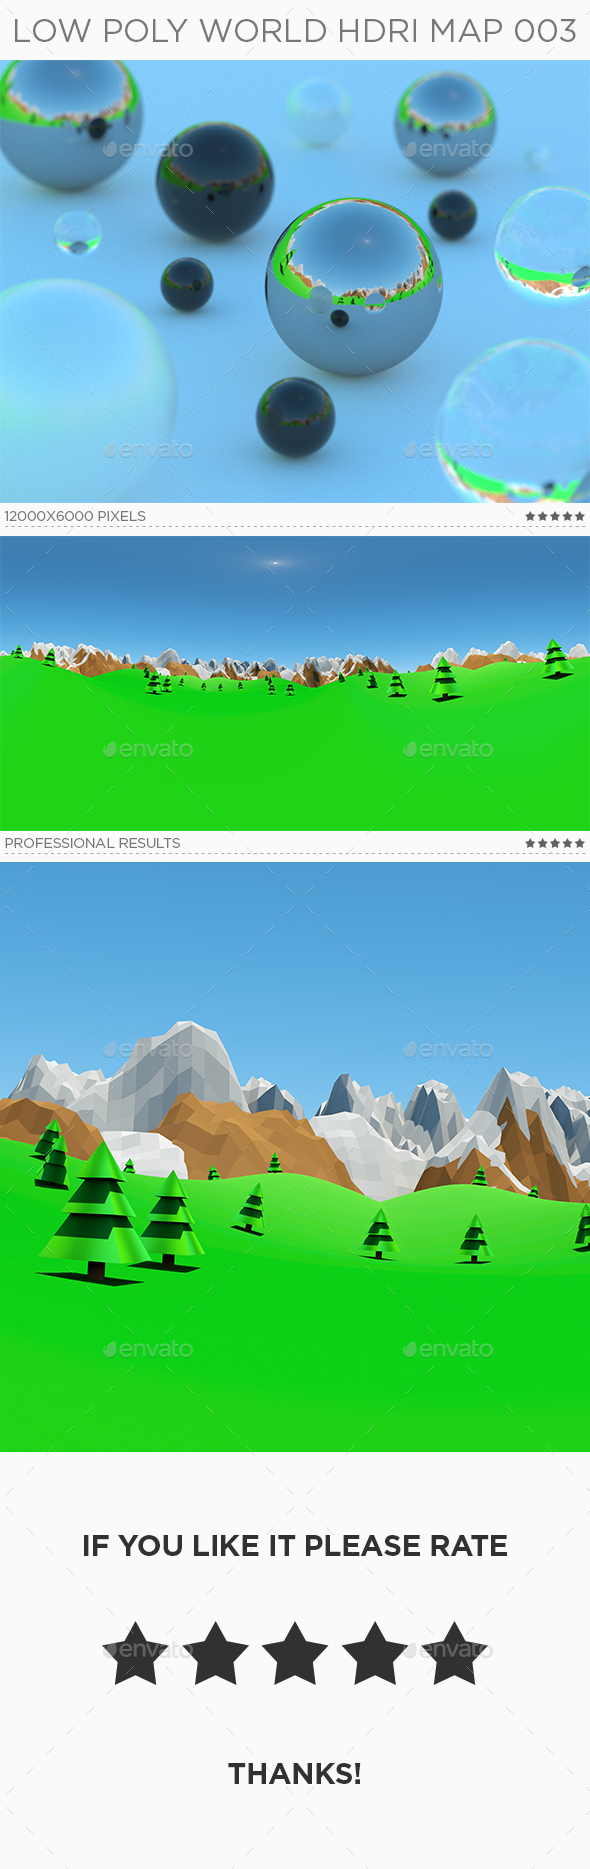 Low Poly World HDRi Map 003 - 3DOcean Item for Sale